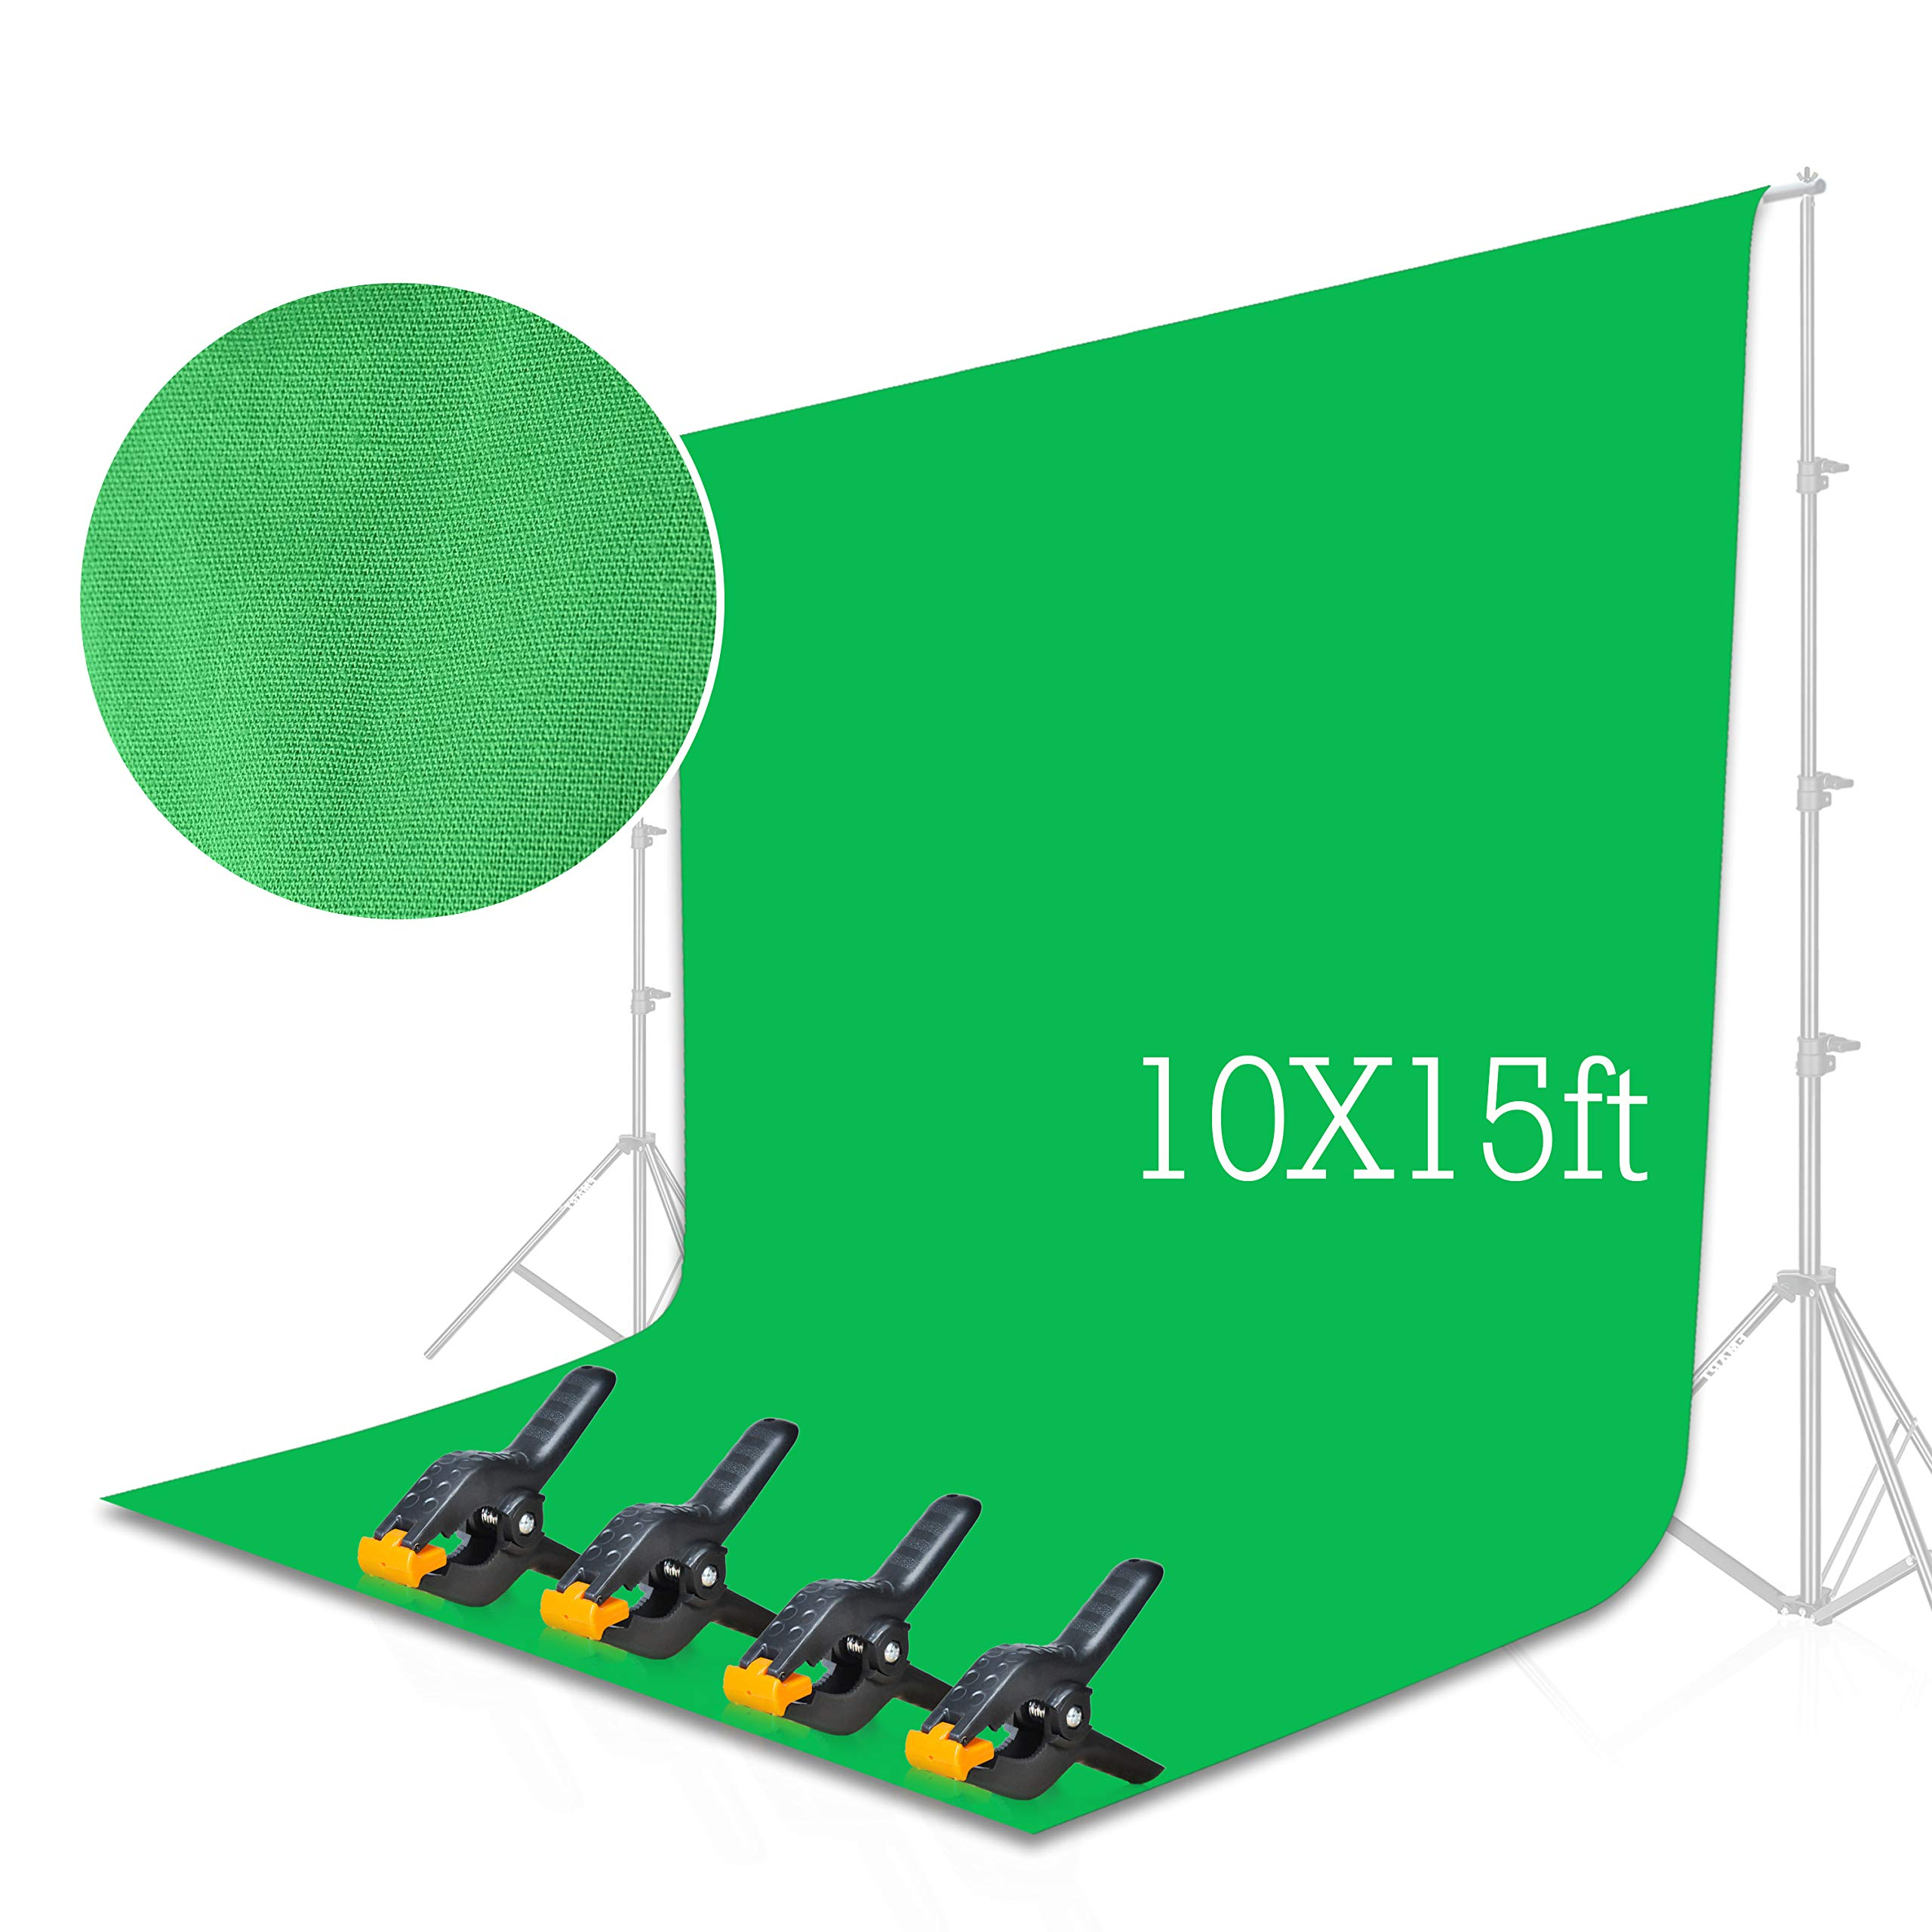 Emart Green Backdrop Background Screen 10 x 15 ft Muslin Photo Video Backdrop Studio, 4 x Backdrop Clamp Included